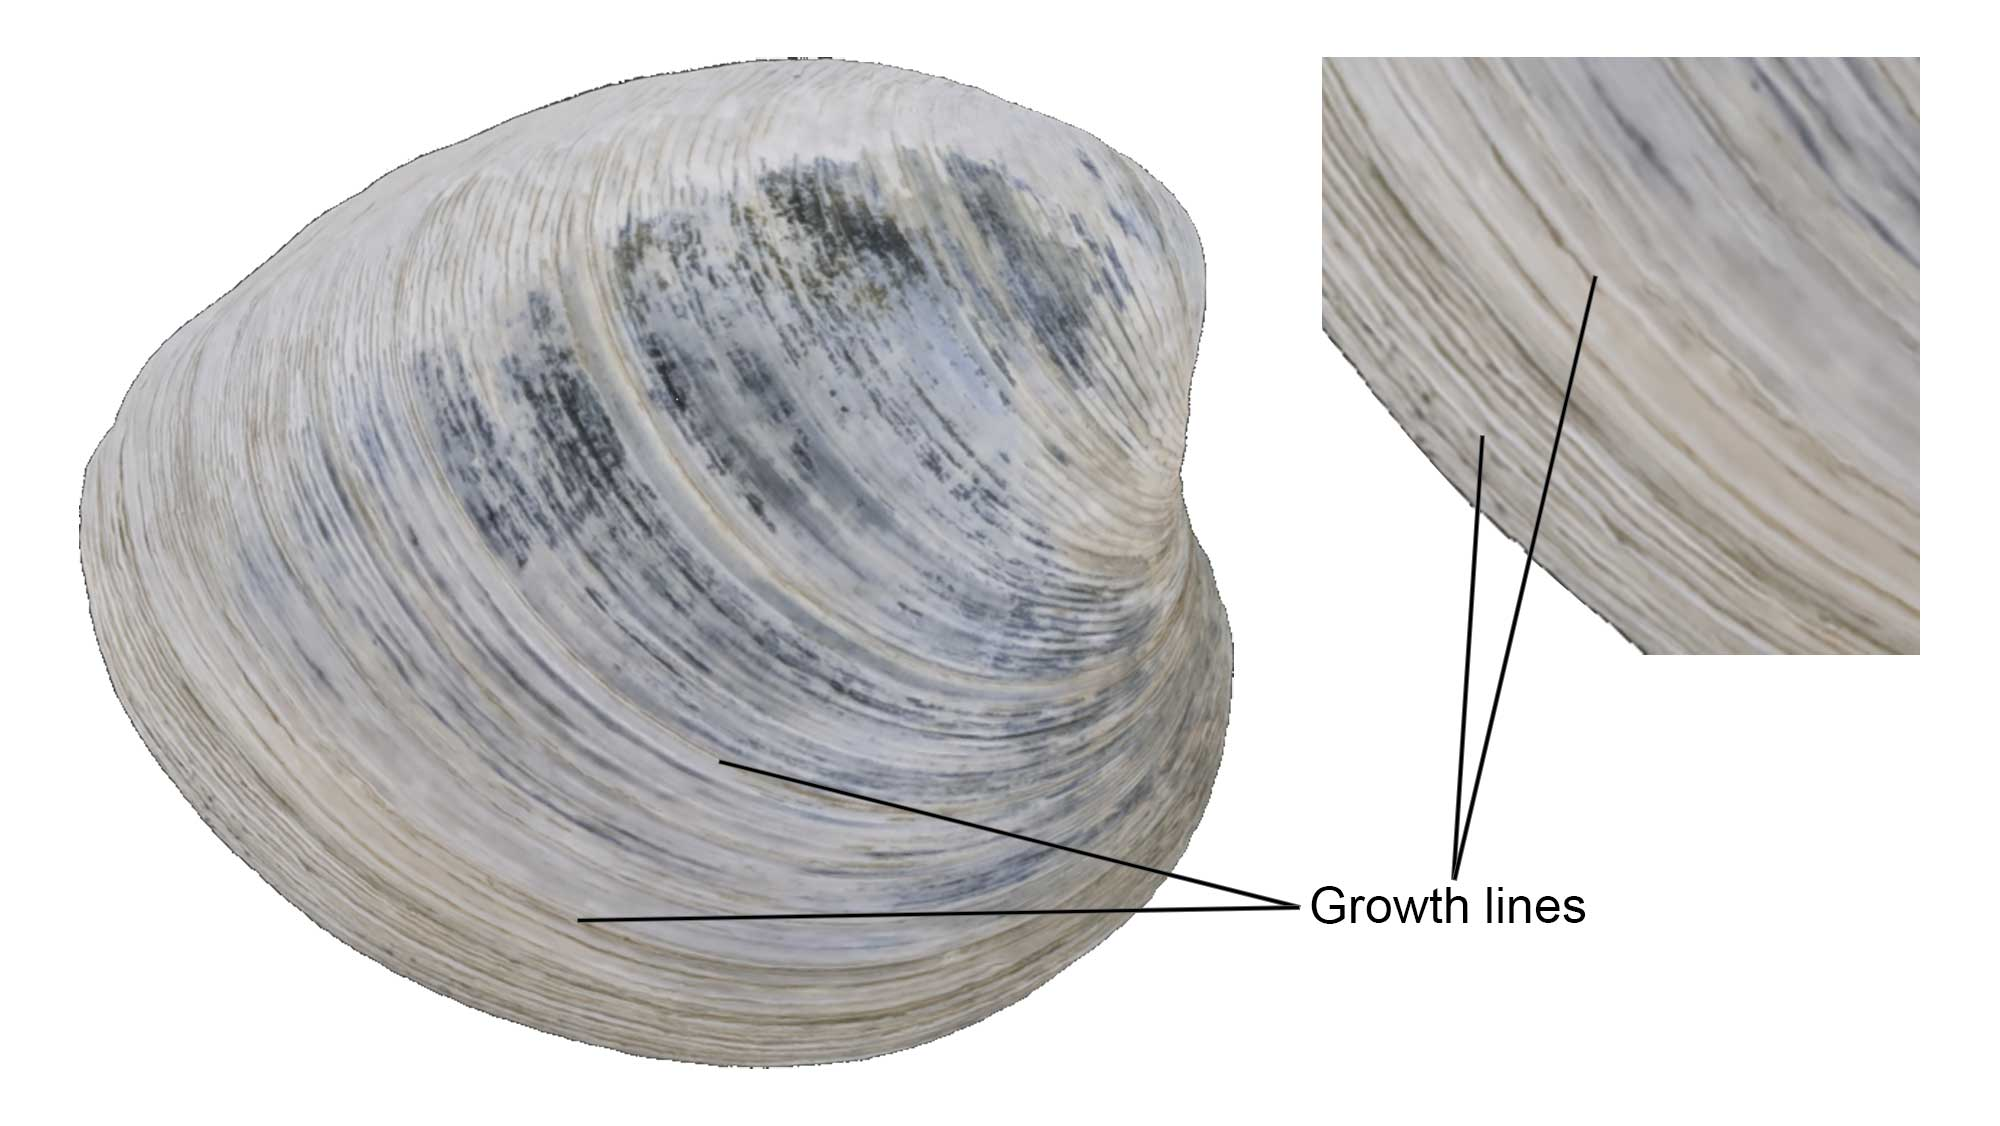 Growth lines on a specimen of clam.